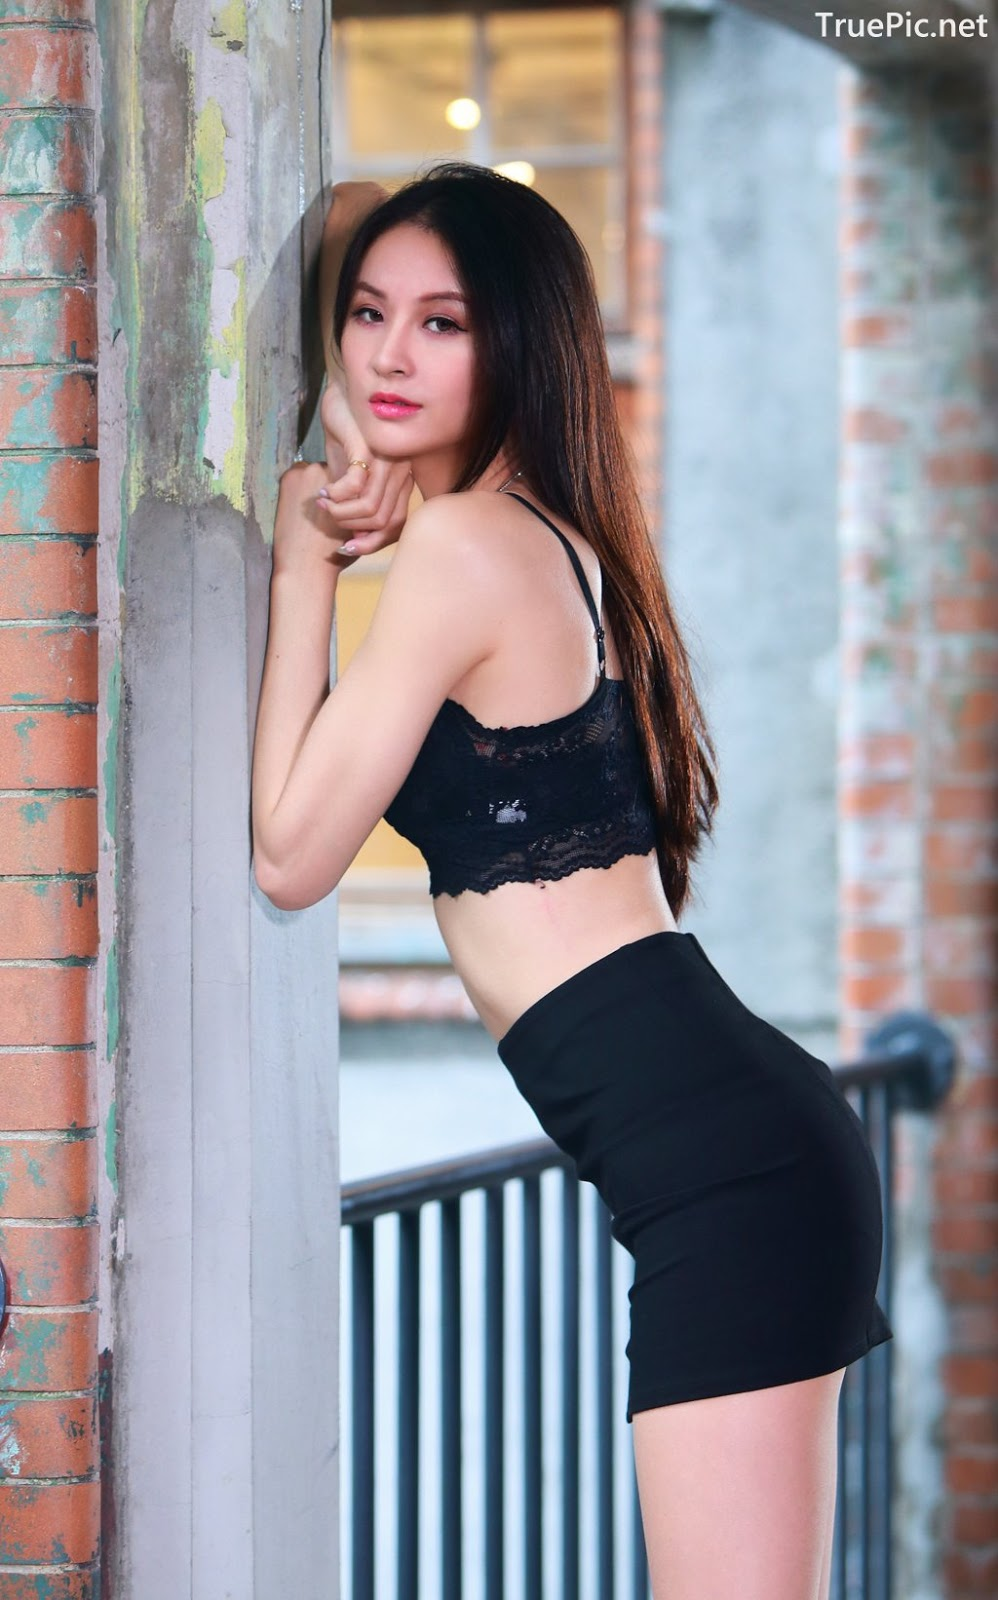 Image-Taiwanese-Beautiful-Long-Legs-Girl-雪岑Lola-Black-Sexy-Short-Pants-and-Crop-Top-Outfit-TruePic.net- Picture-28